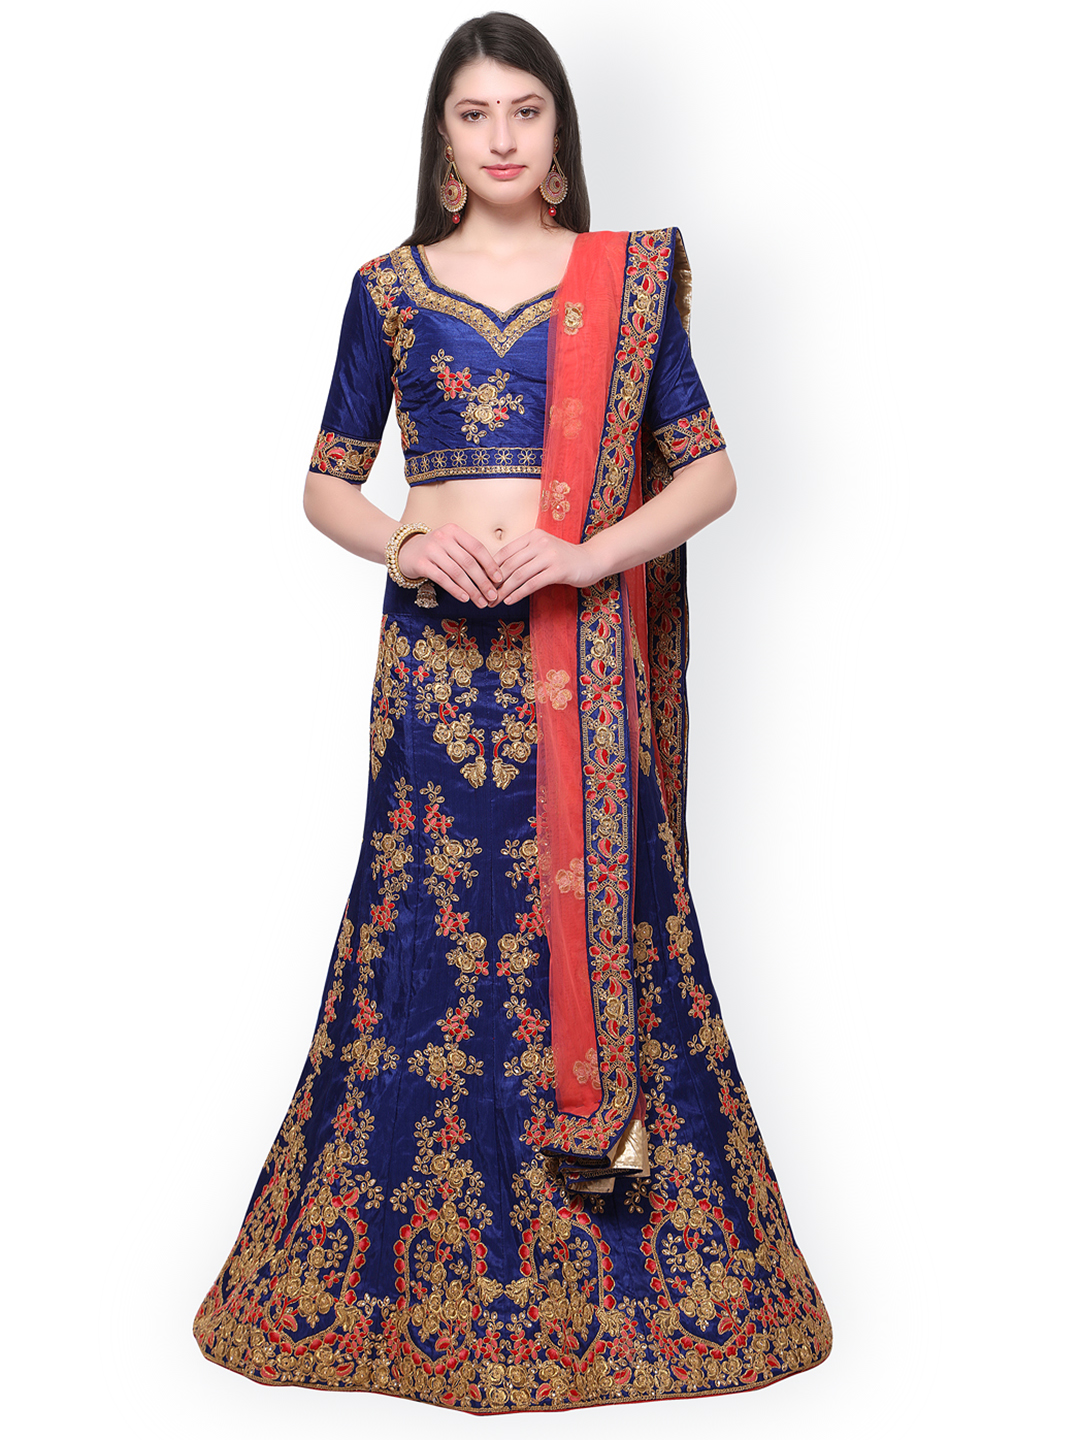 Aasvaa Navy Blue & Coral Embroidered Semi-Stitched Lehenga & Blouse with Dupatta Price in India